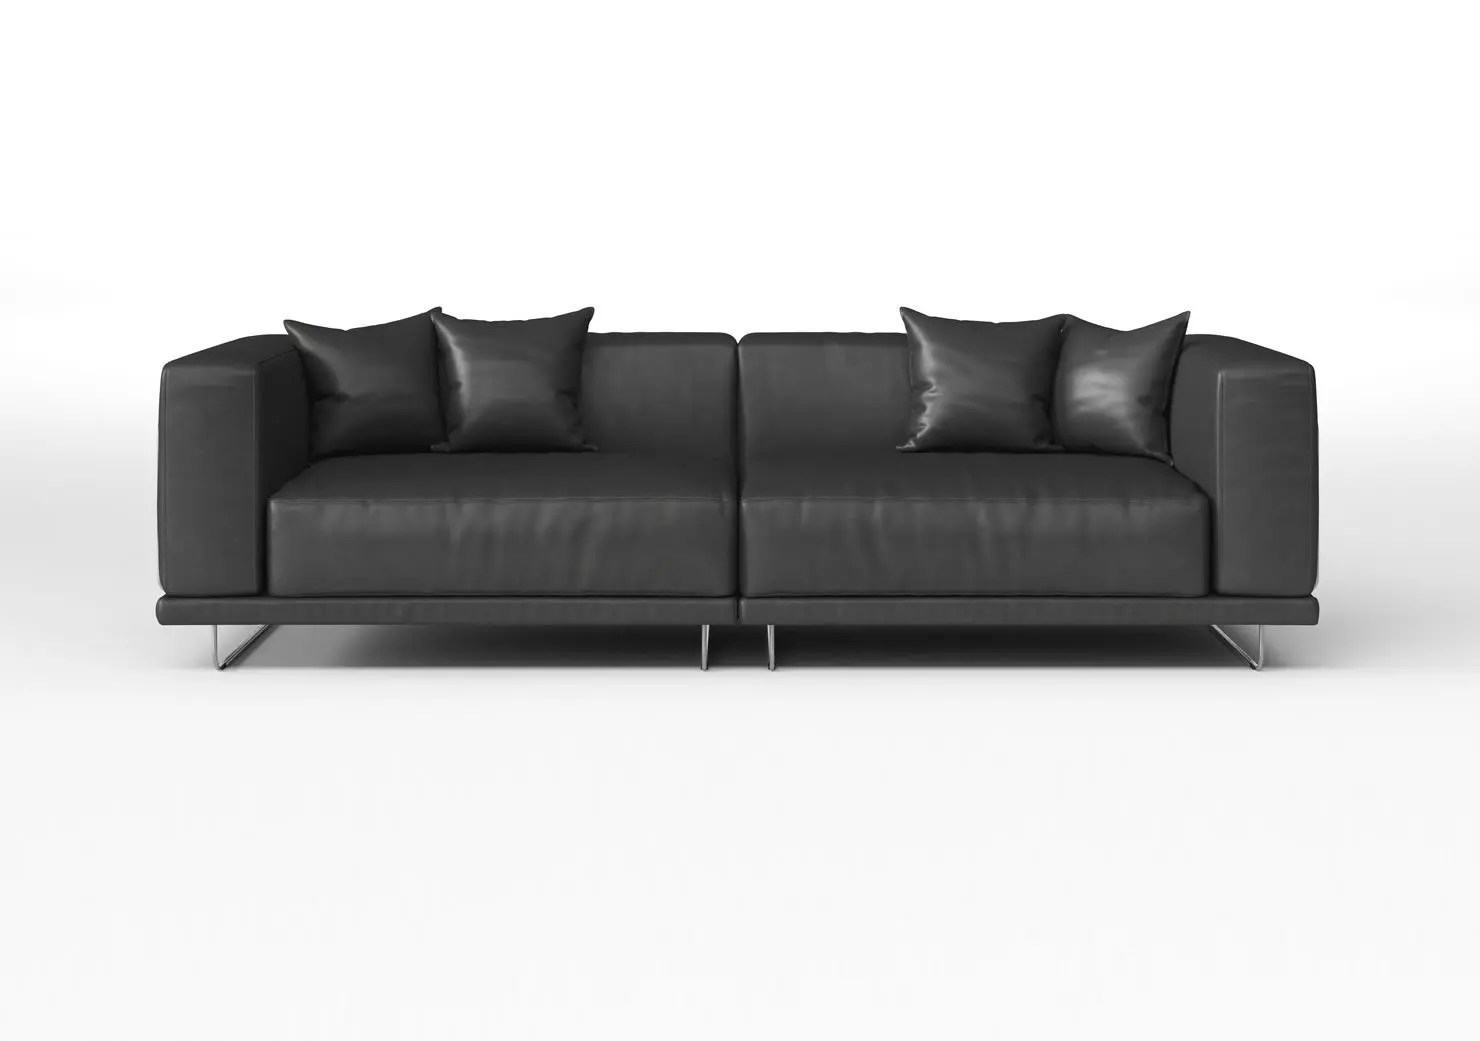 Ledersofa Ikea Kramfors Ikea Tylosand Collection And Sofa Slipcovers Resources